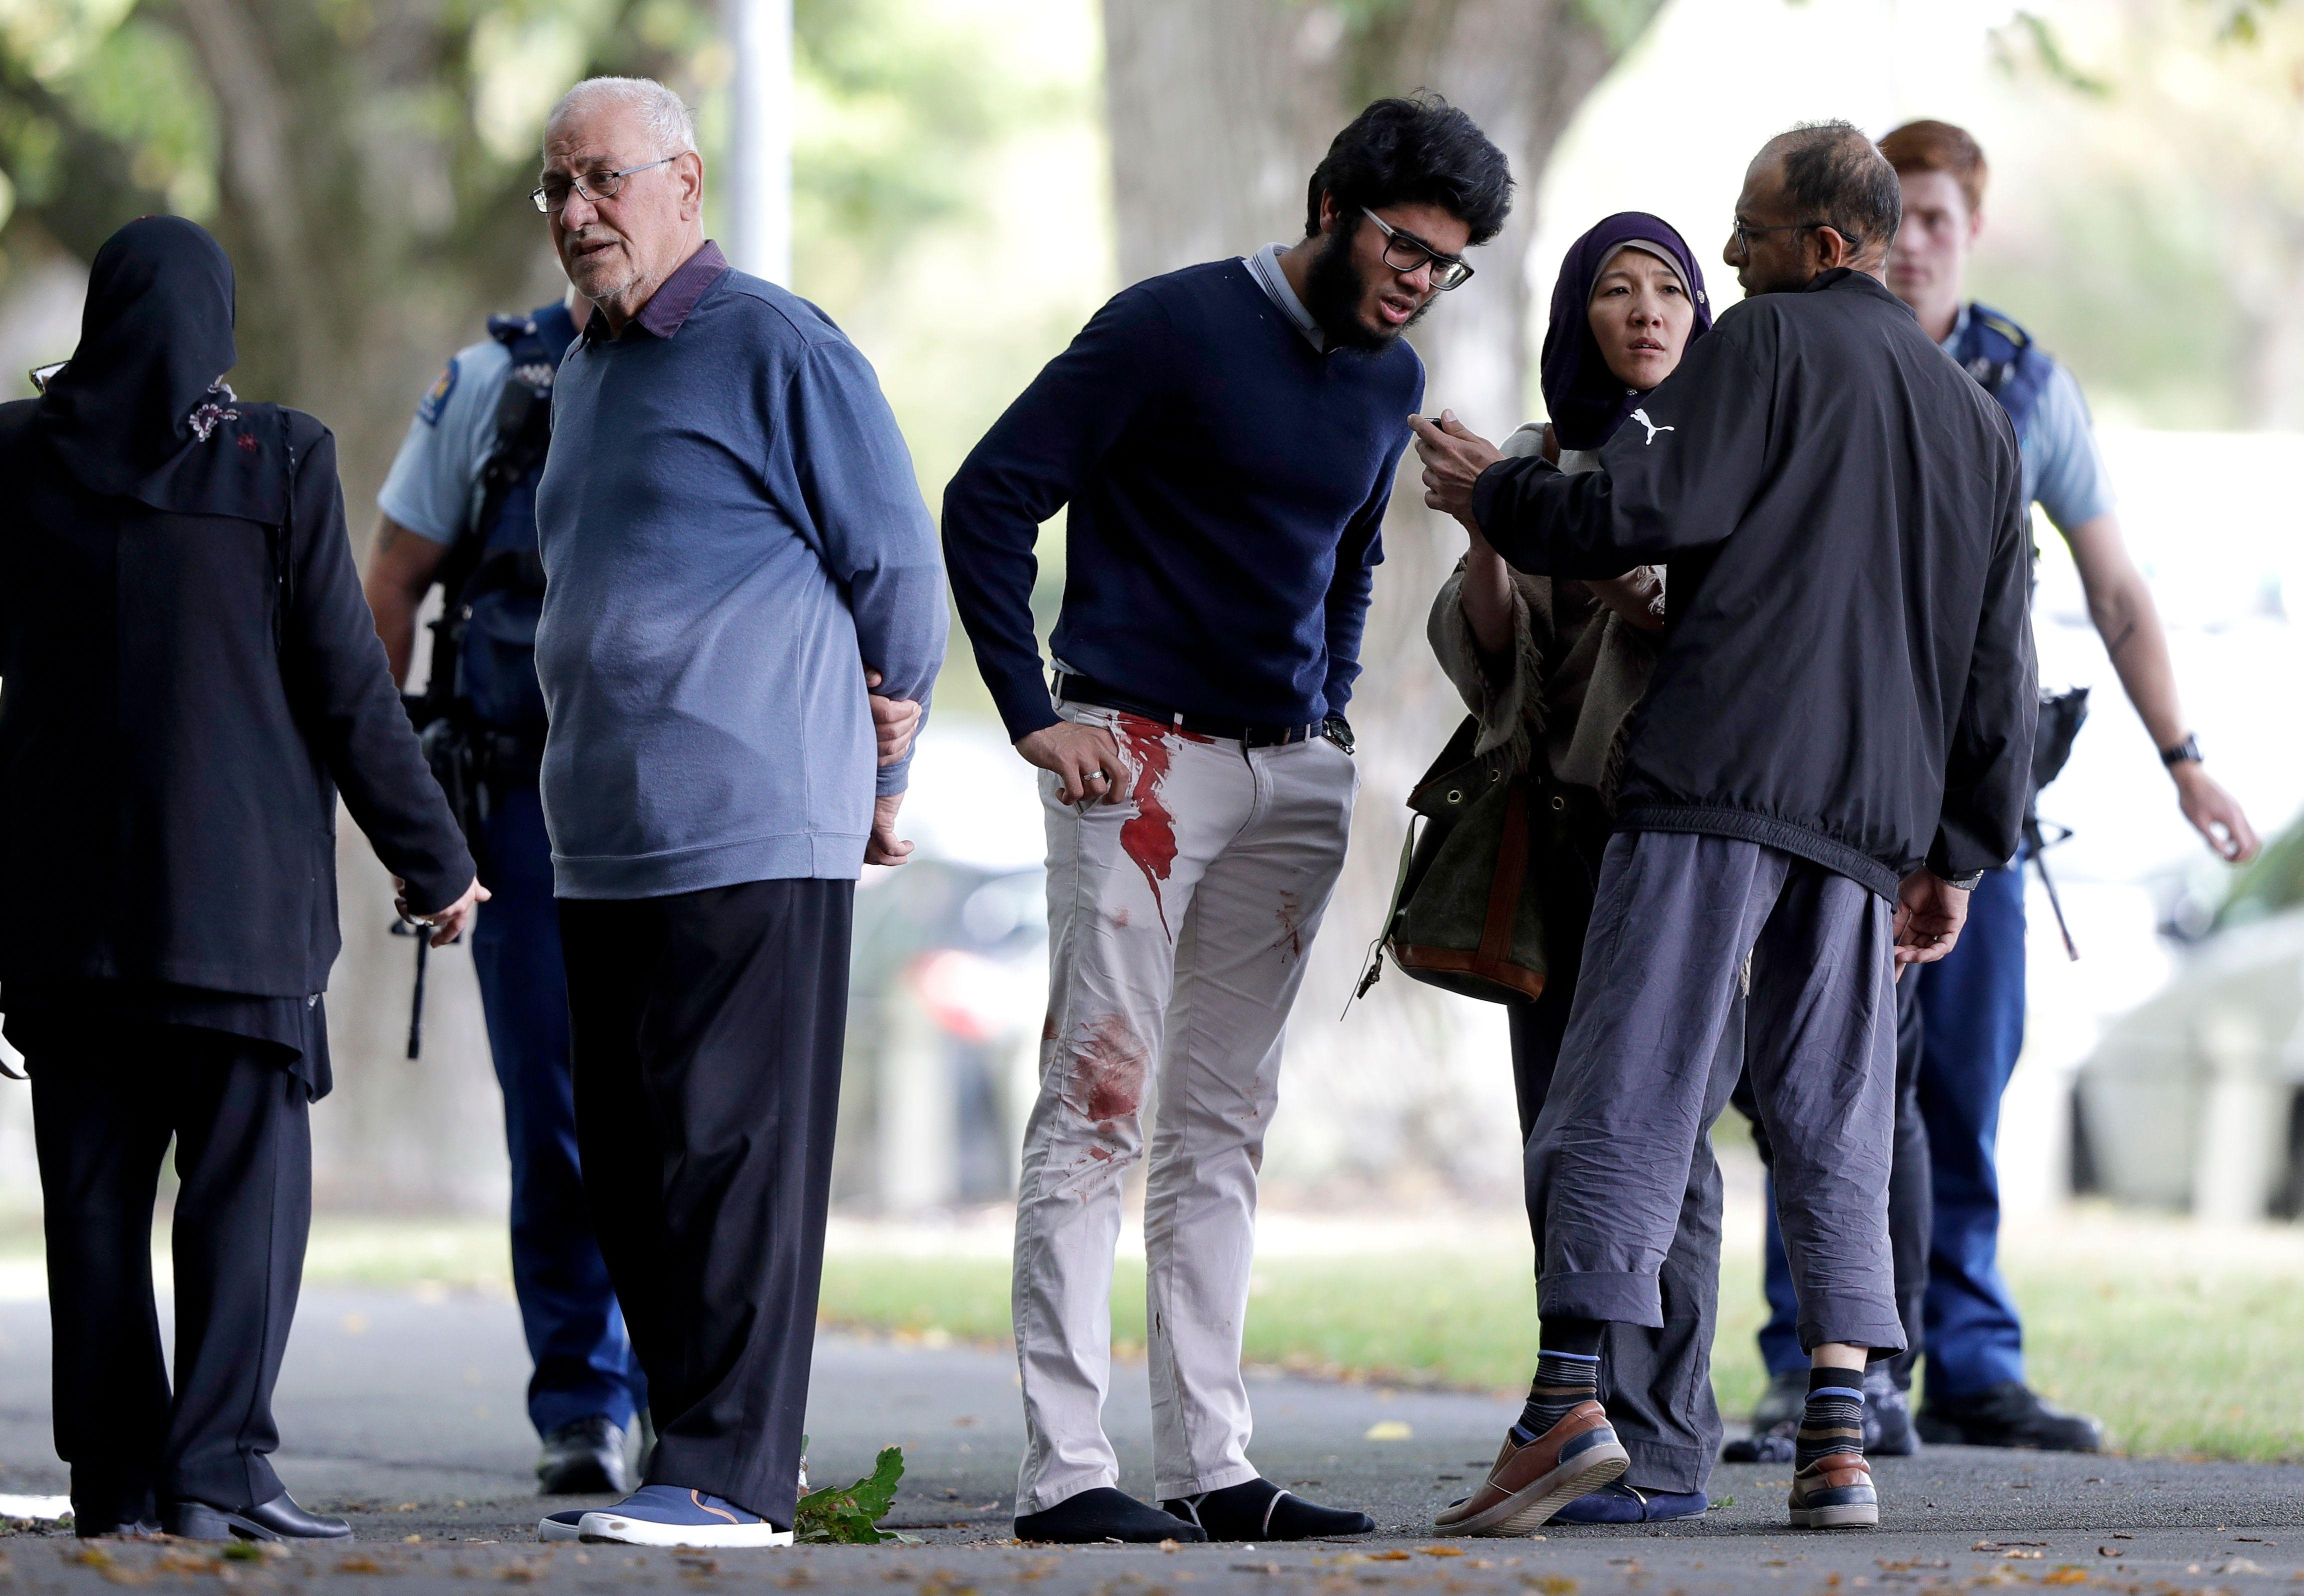 New Zealand mosque massacre proves social media giants don't deserve their power, freedom